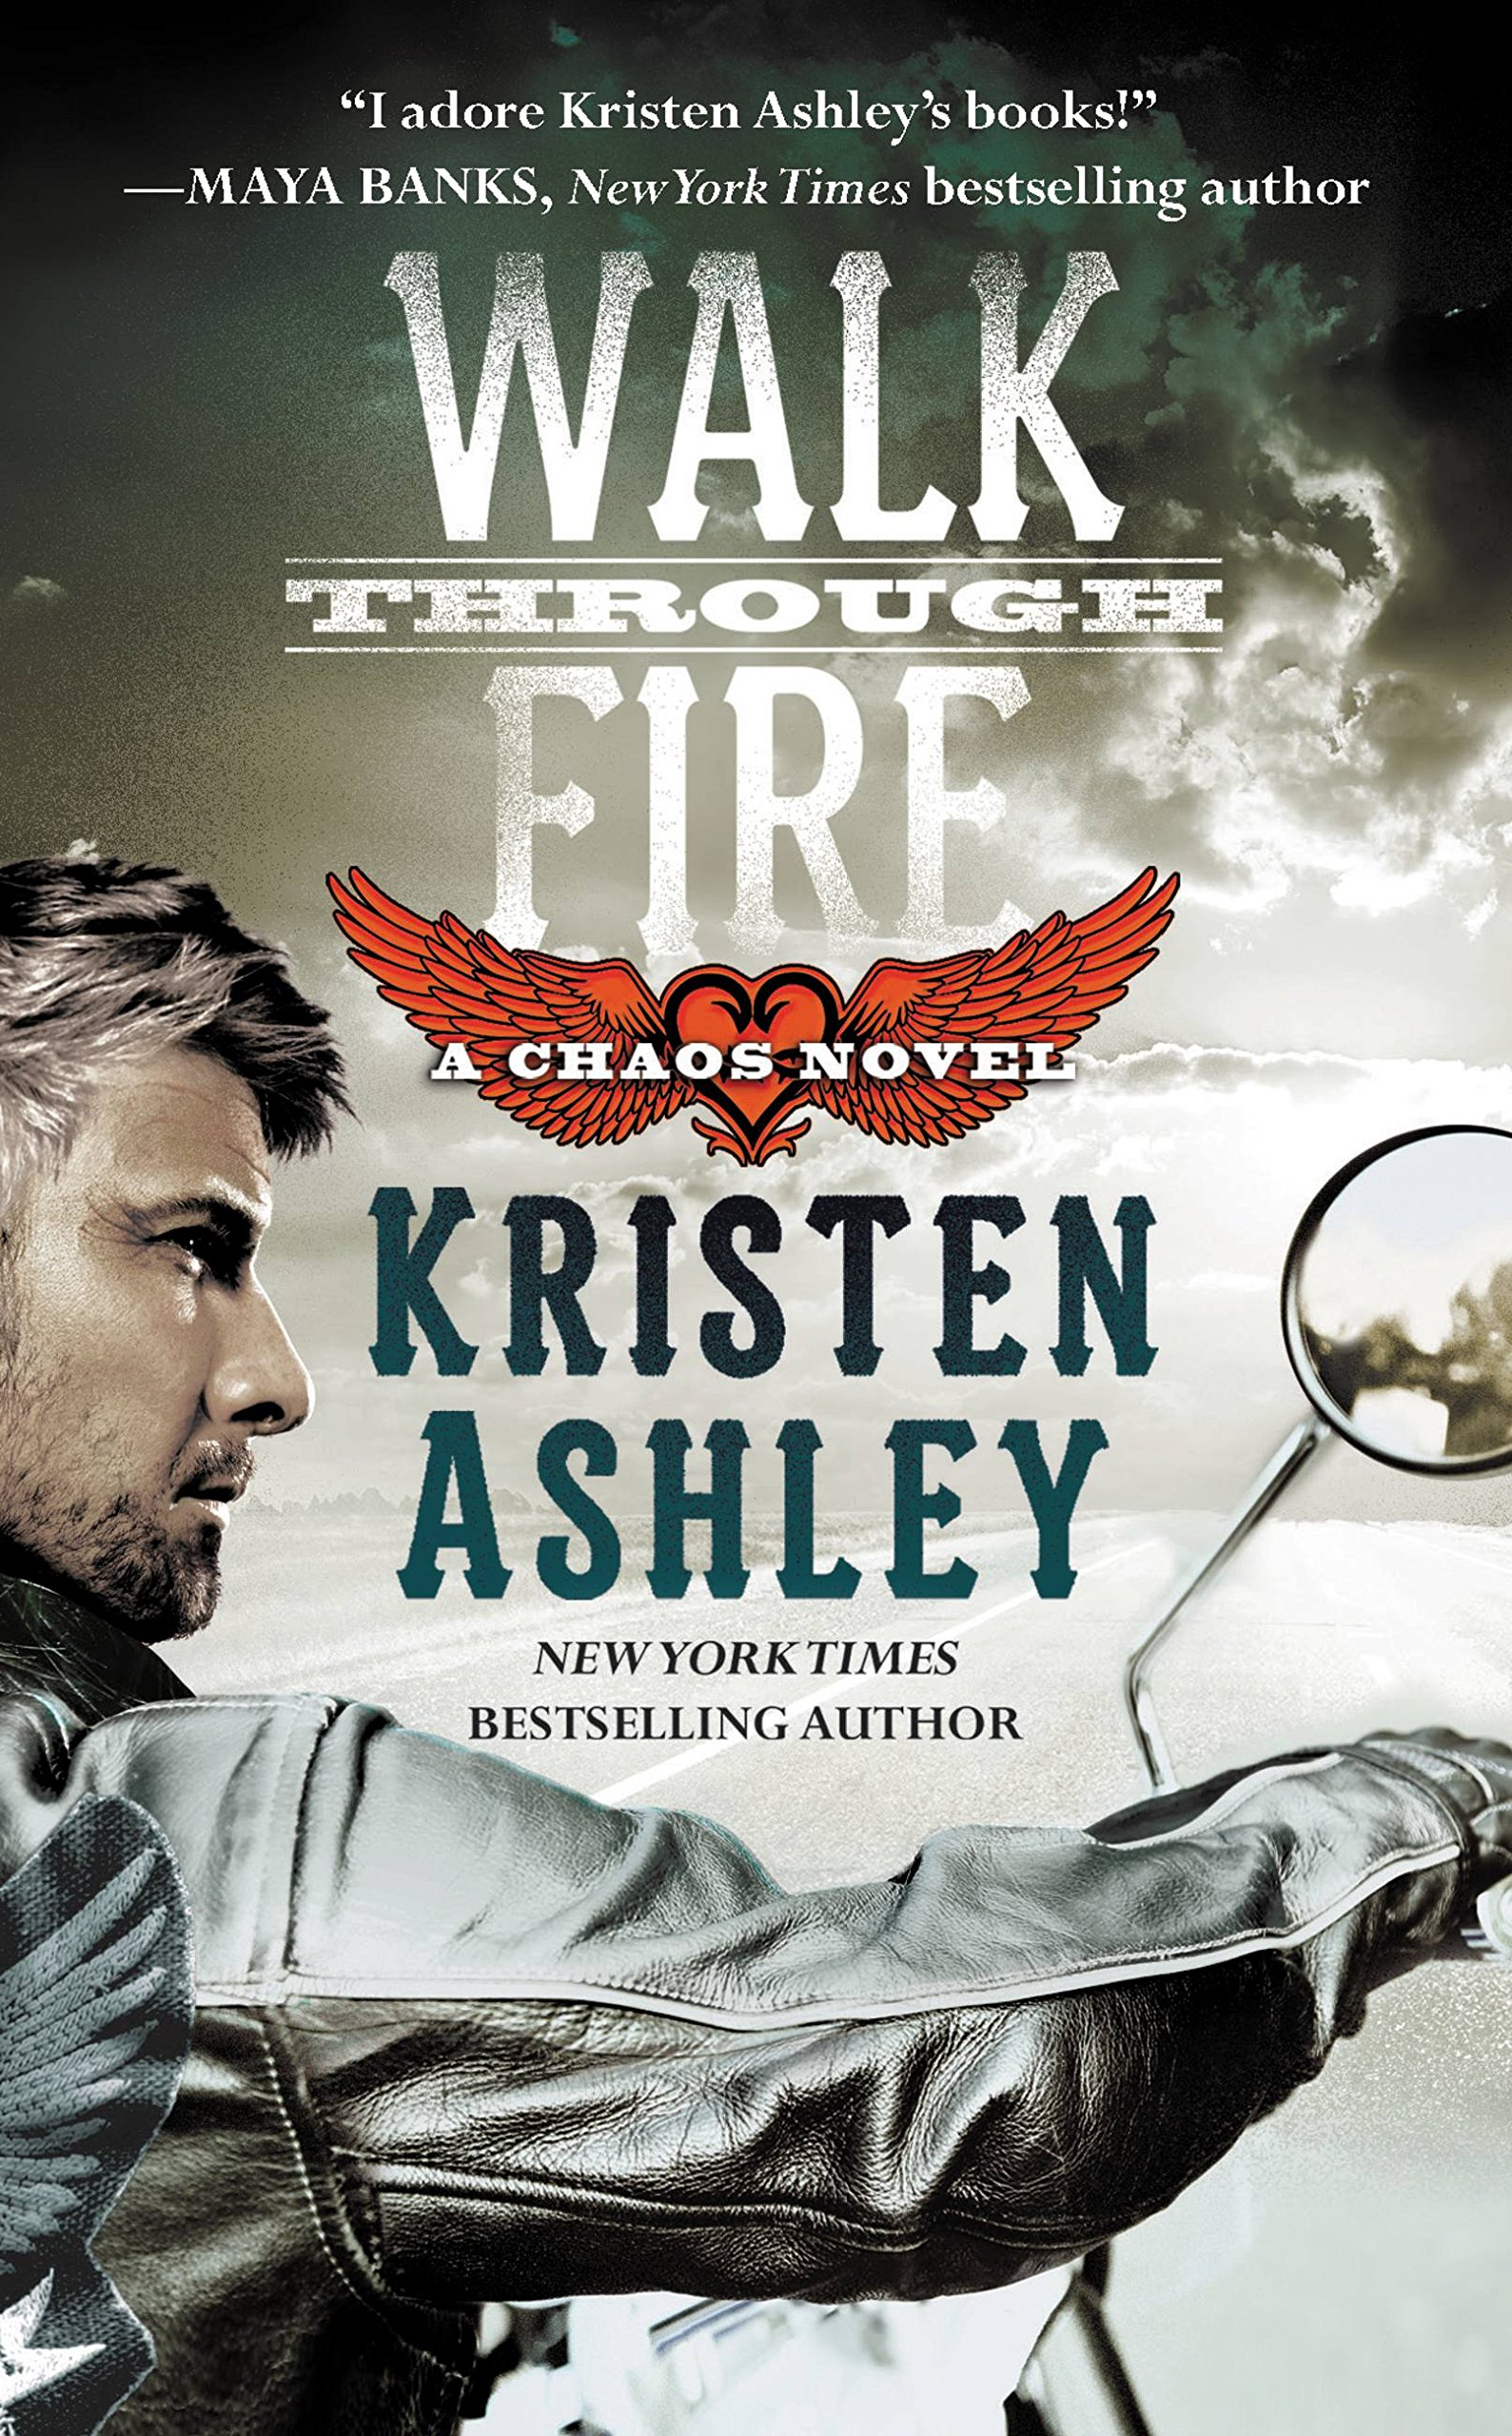 Book #4 in the Chaos series, I LOVED Walk Through Fire by Kristen Ashley